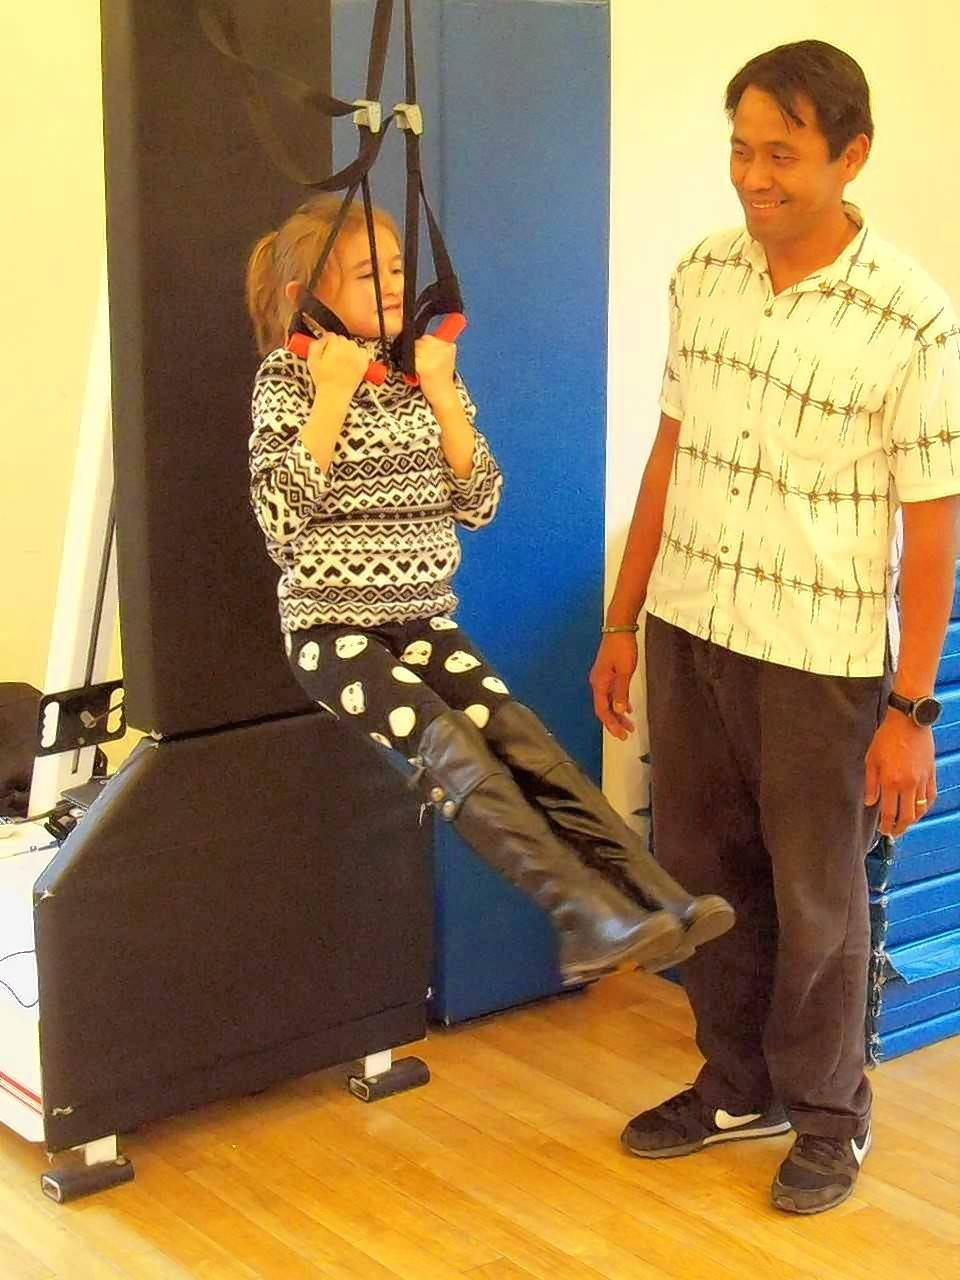 Seven-year-old Ariel Panteleeva of Arlington Heights demonstrates a pullup activity supervised by Riverwoods Montessori Teacher Freddie Madrid.